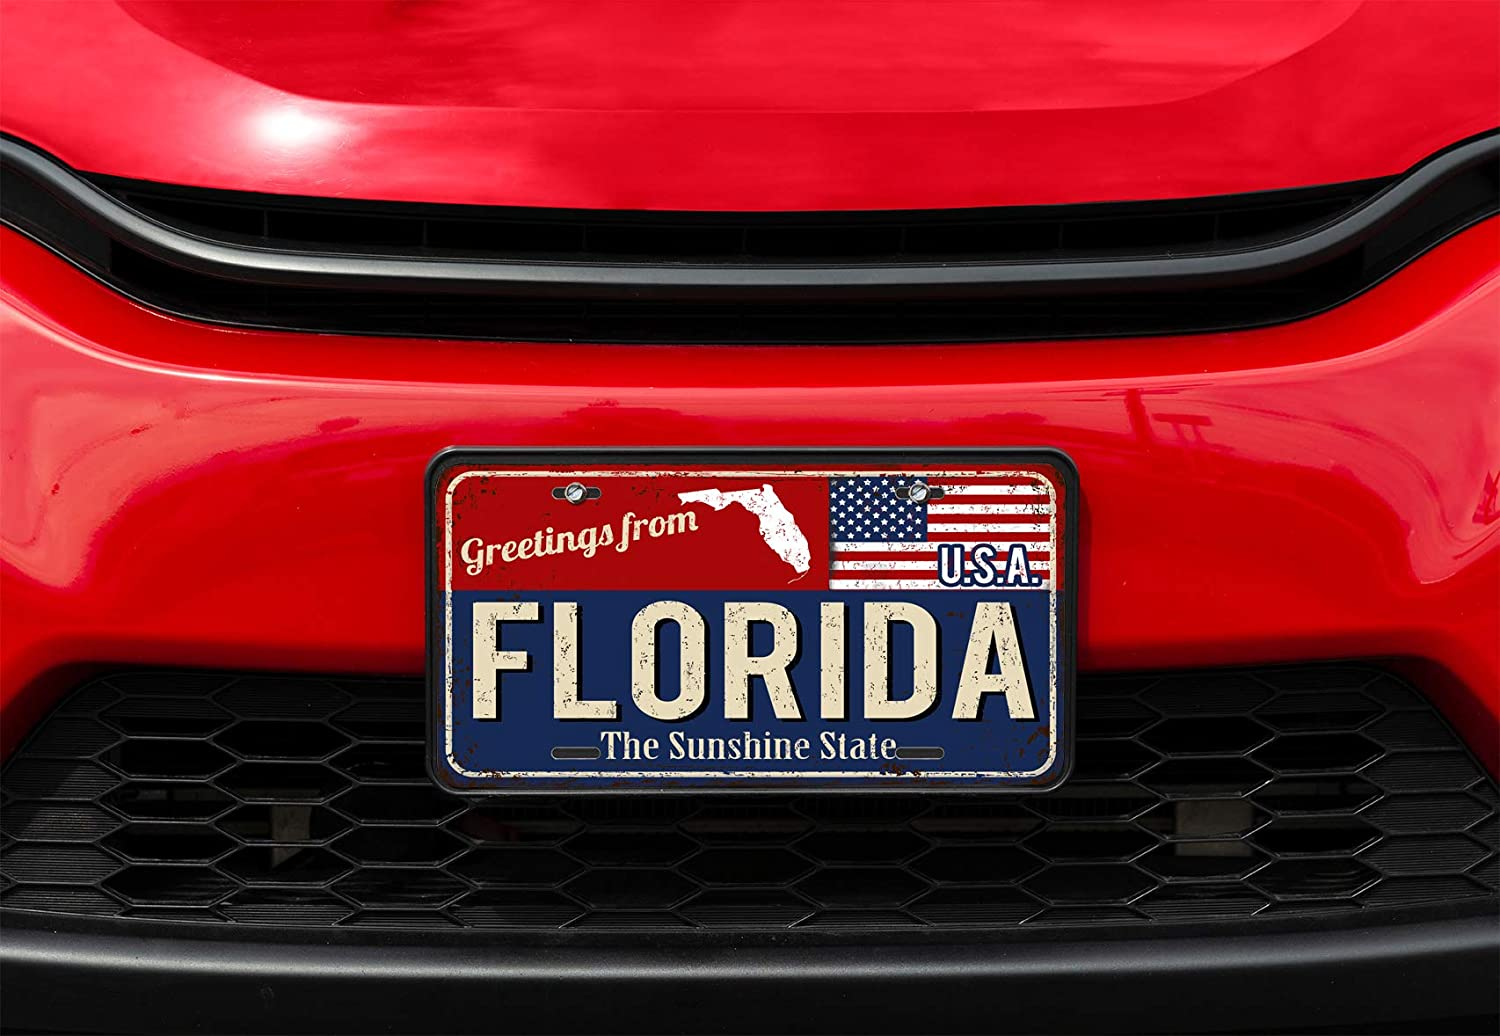 Amcove License Plate Black and White American Flag Decorative Car Front License Plate,Vanity Tag,Metal Car Plate,Aluminum Novelty License Plate for Men//Women//Boy//Girls Car,6 X 12 Inch